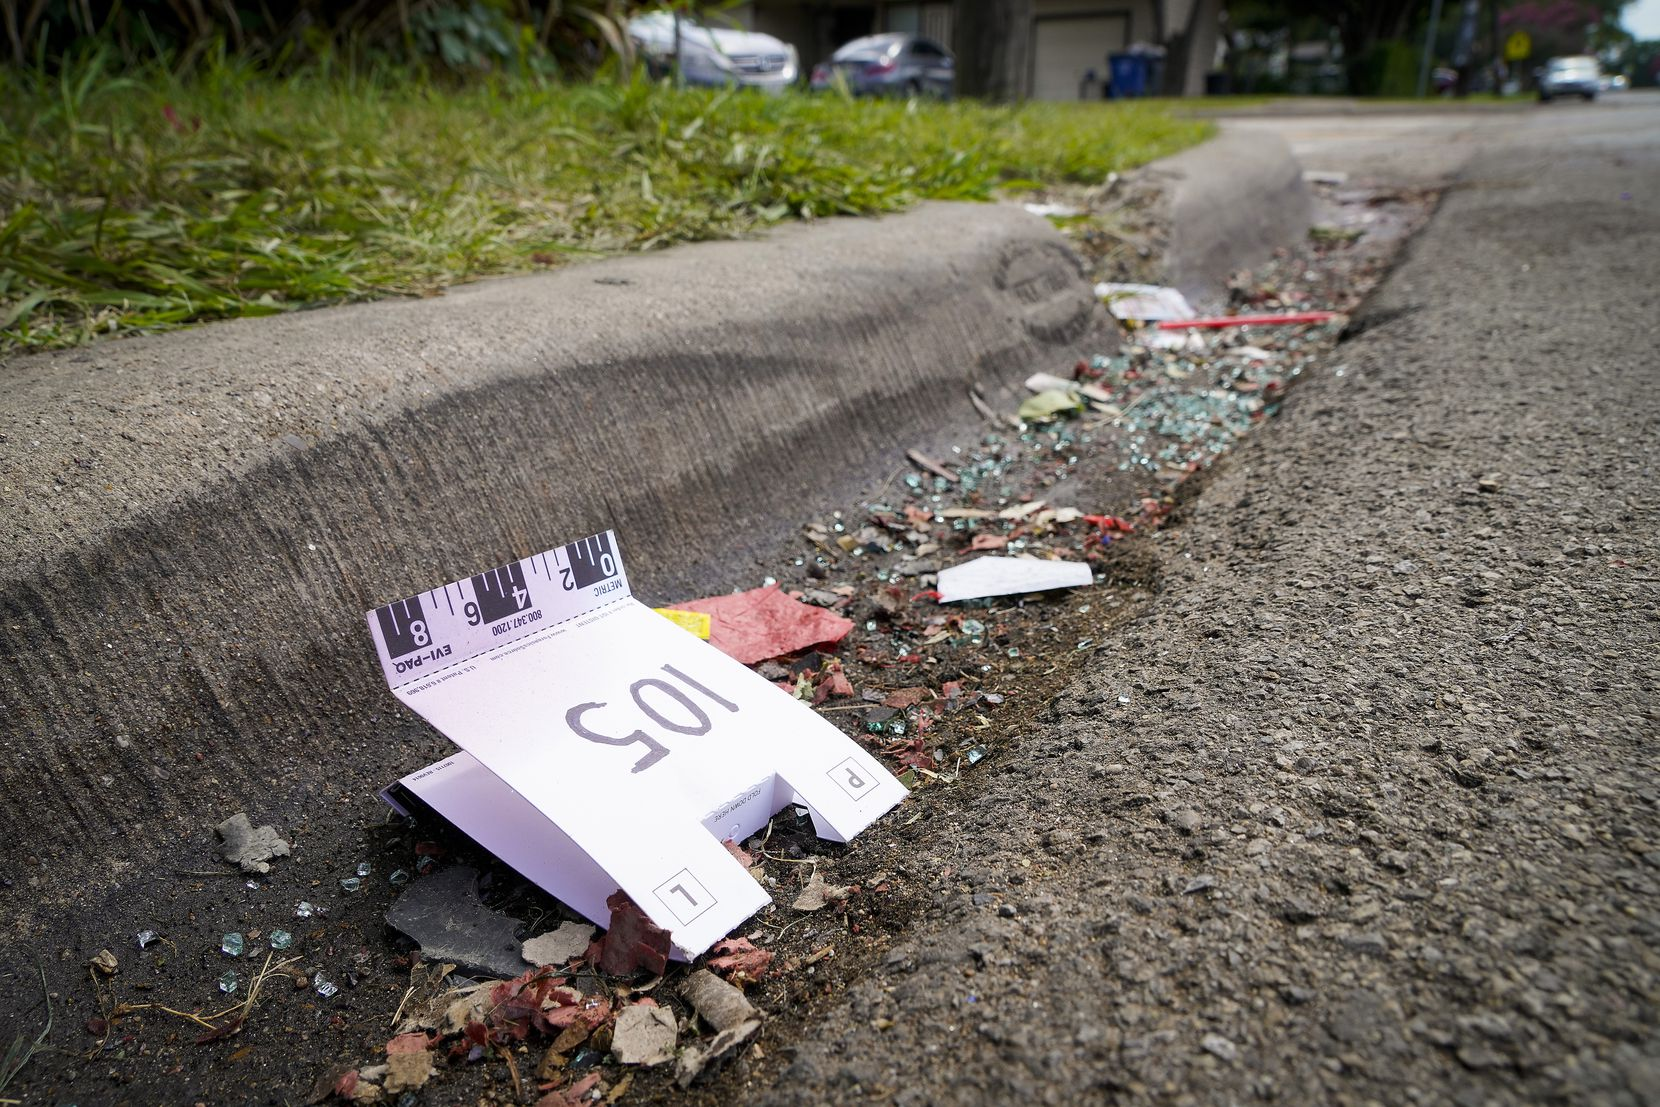 A crime scene evidence tent rests in the gutter near the scene of a shooting in the 8300 block of Towns Street in Hamilton Park on Monday.